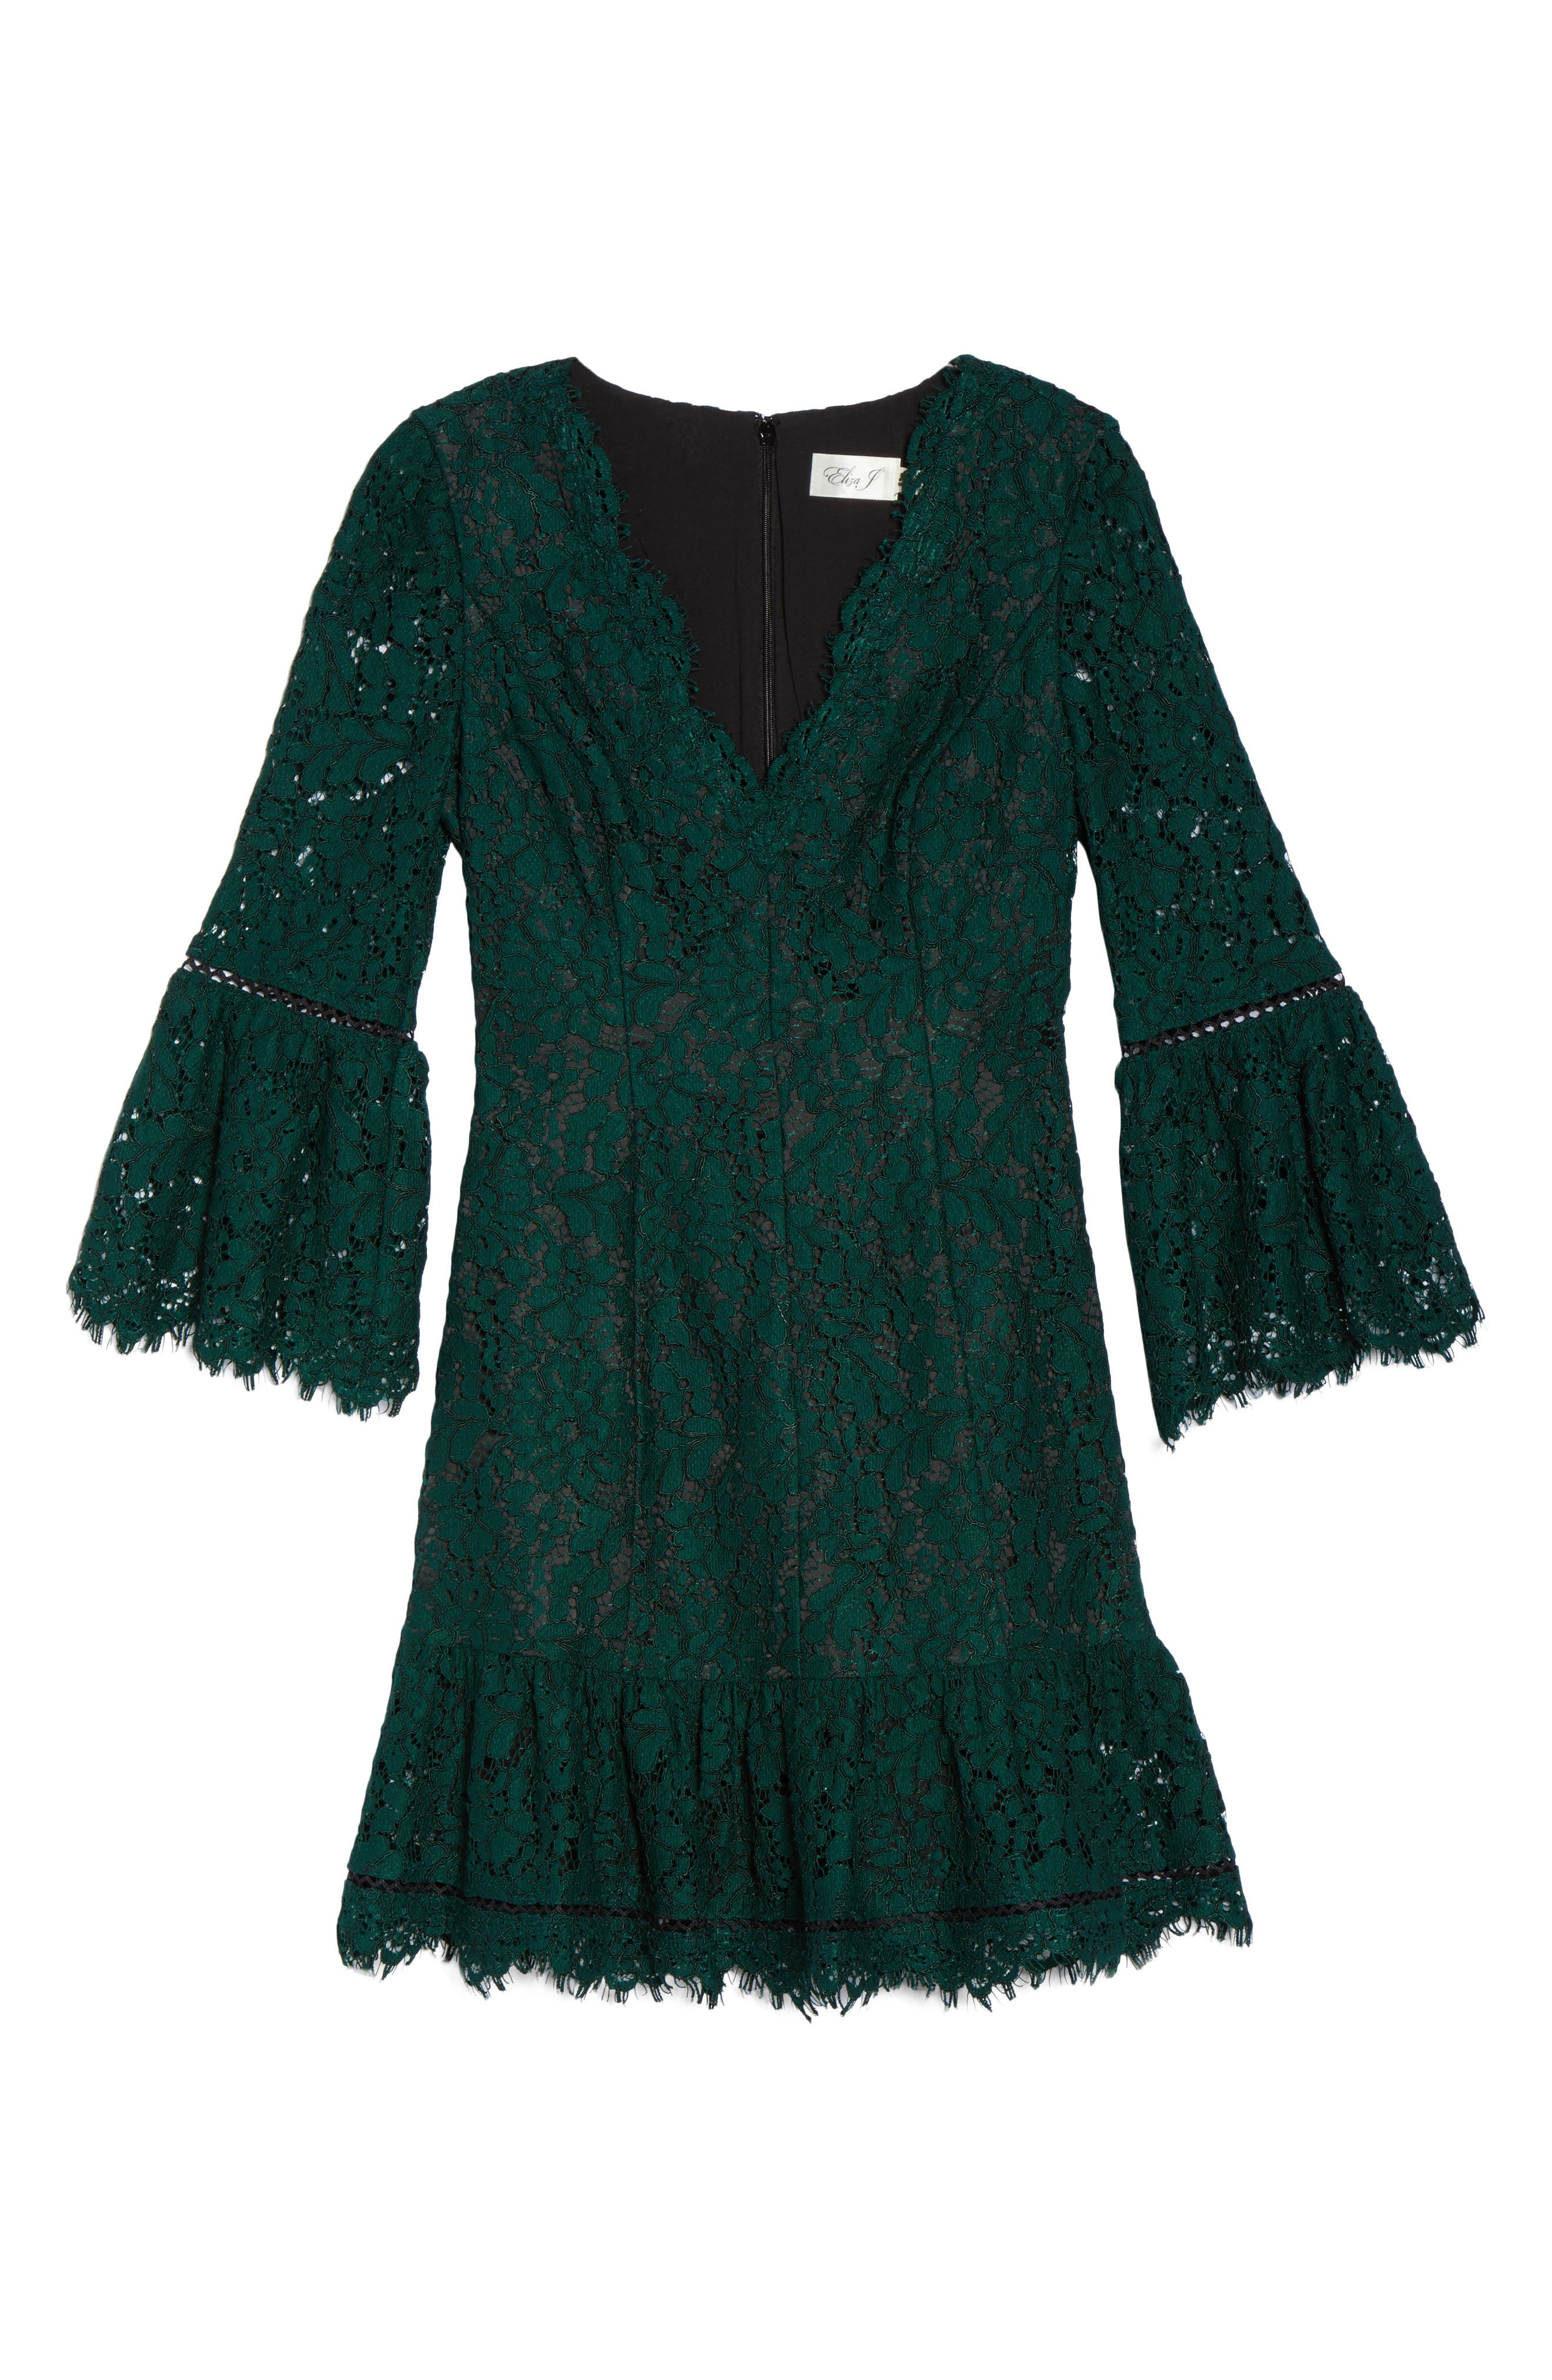 ELIZA J,                             Bell Sleeve Lace Cocktail Dress,                             Alternate thumbnail 7, color,                             GREEN/ BLACK